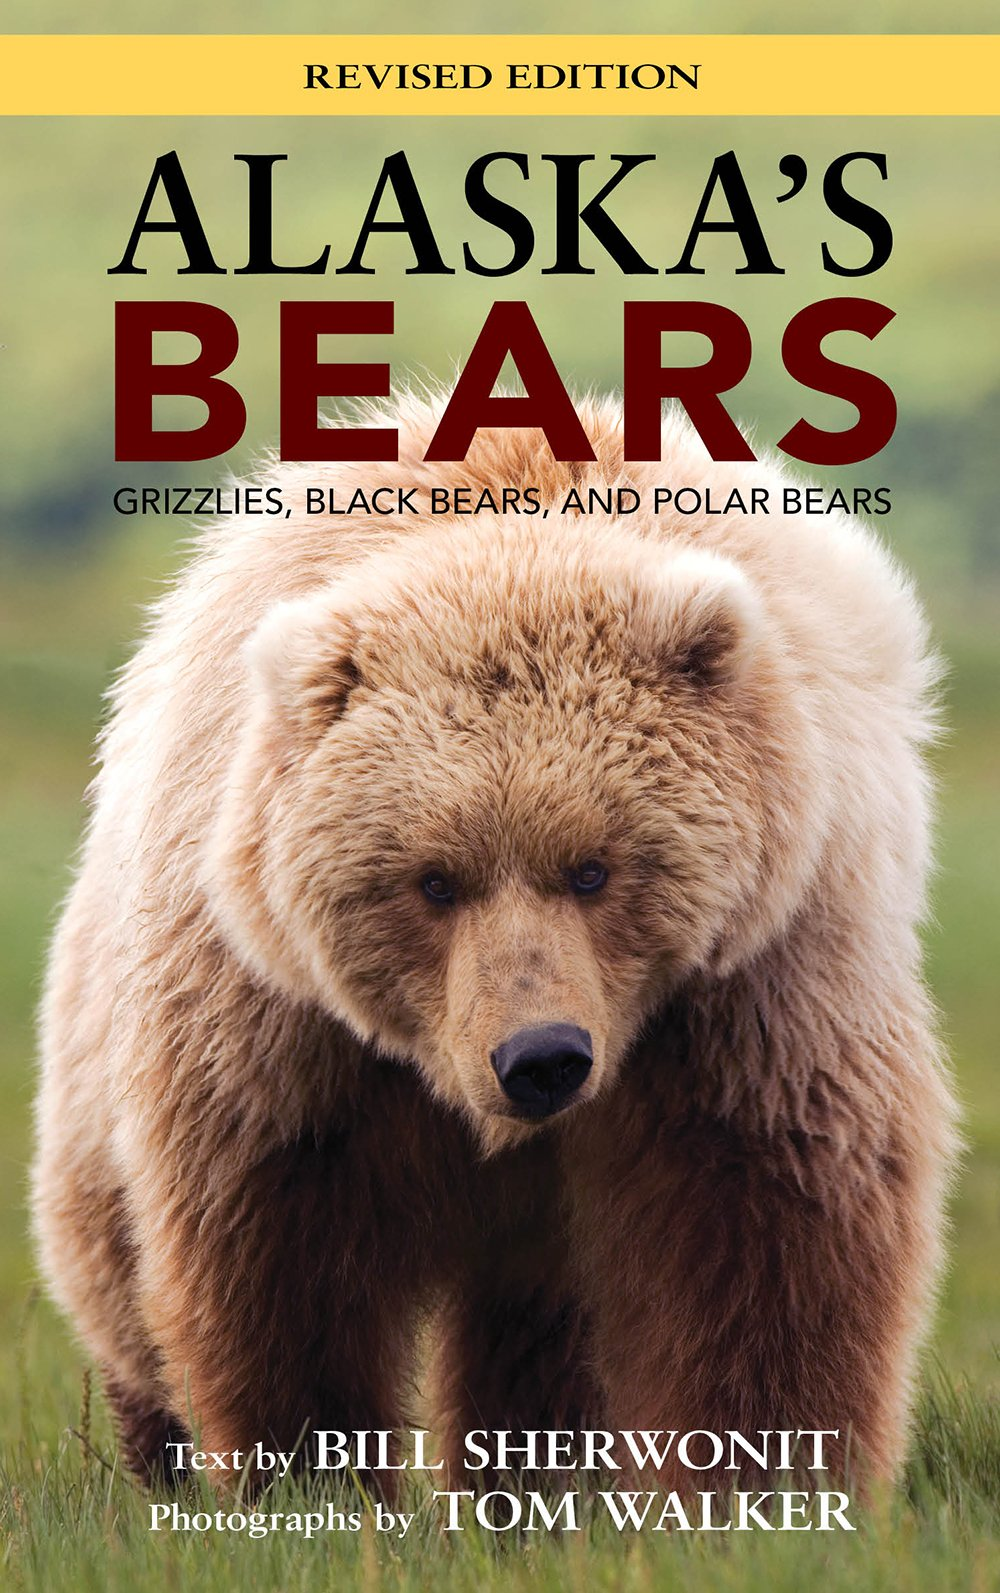 Bears on Bears: Interviews & Discussions, revised edition